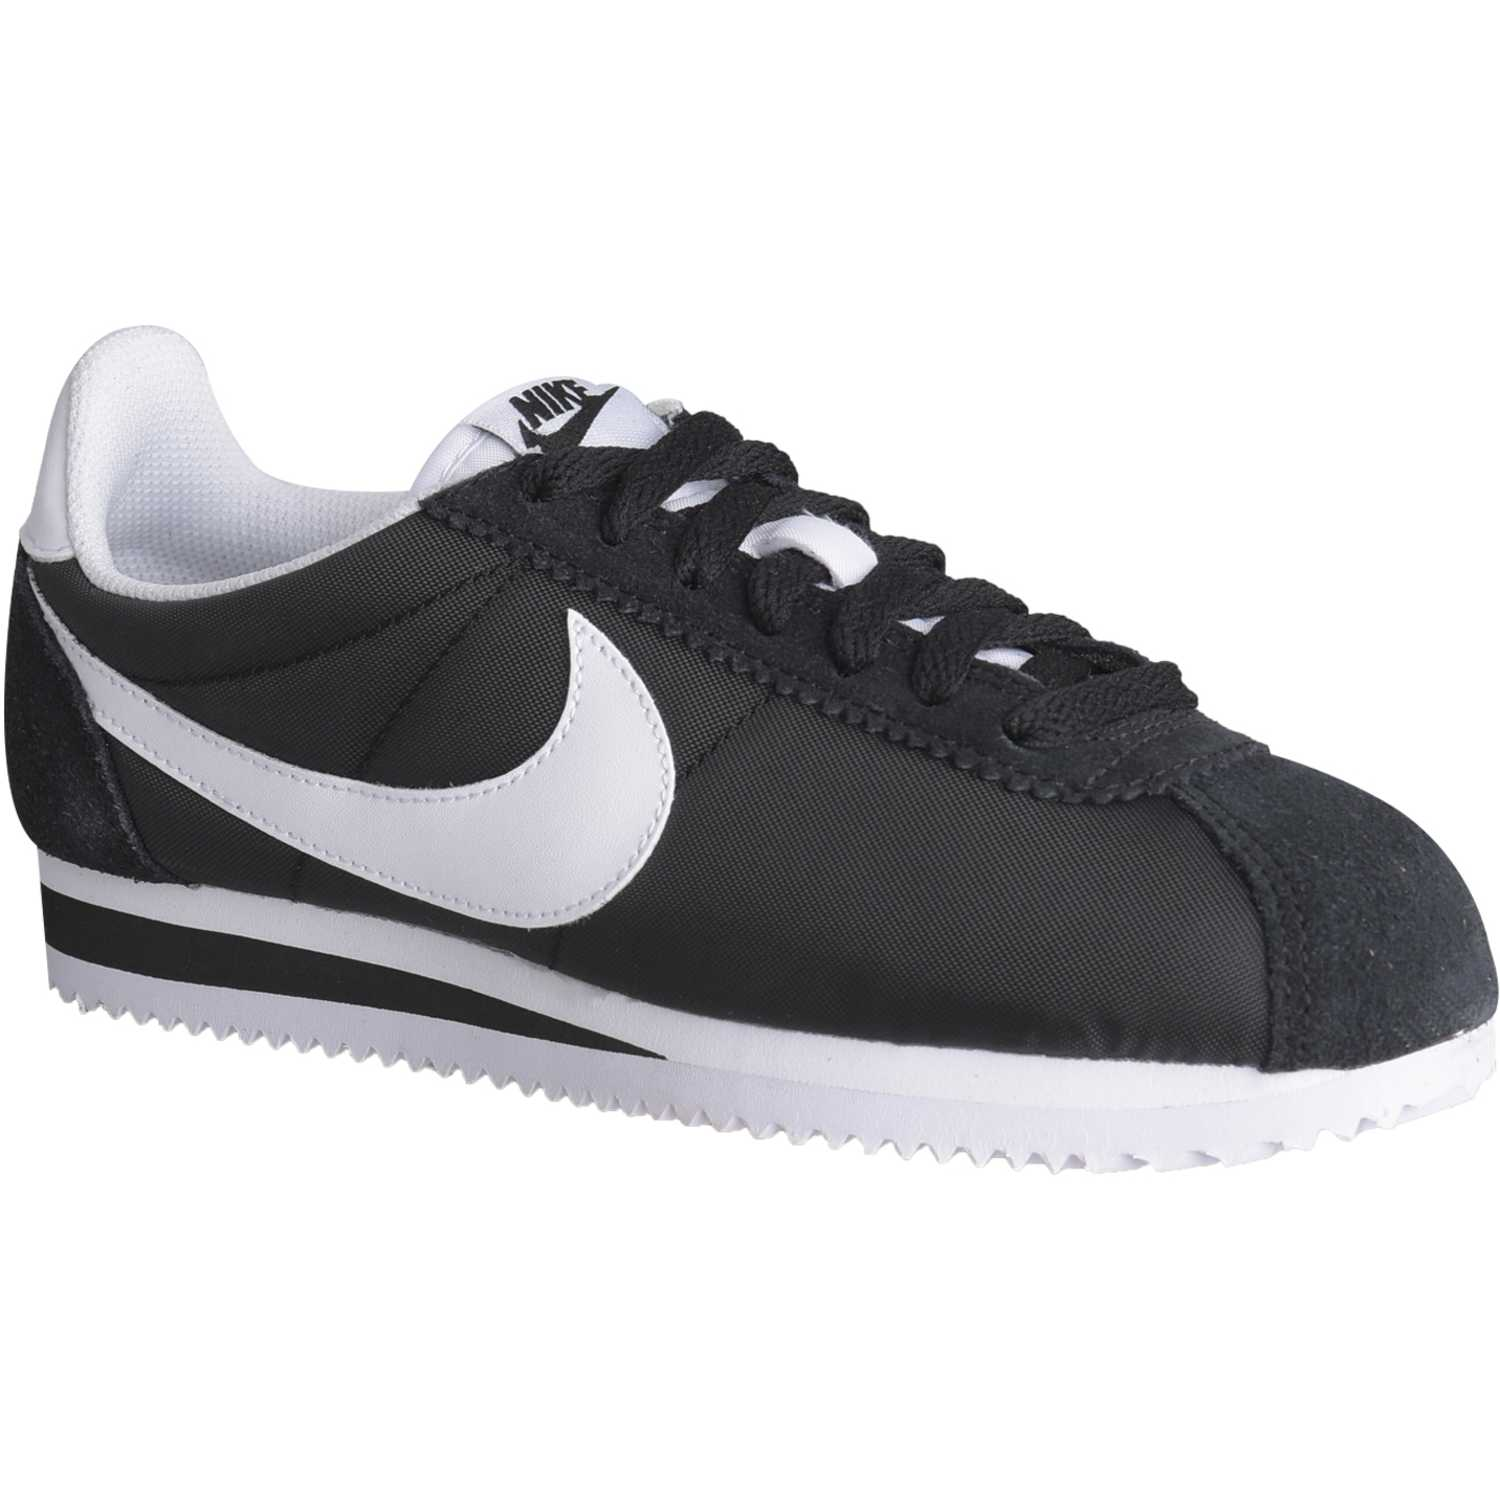 Cuña de Mujer Nike NG/BL wmns classic cortez nylon